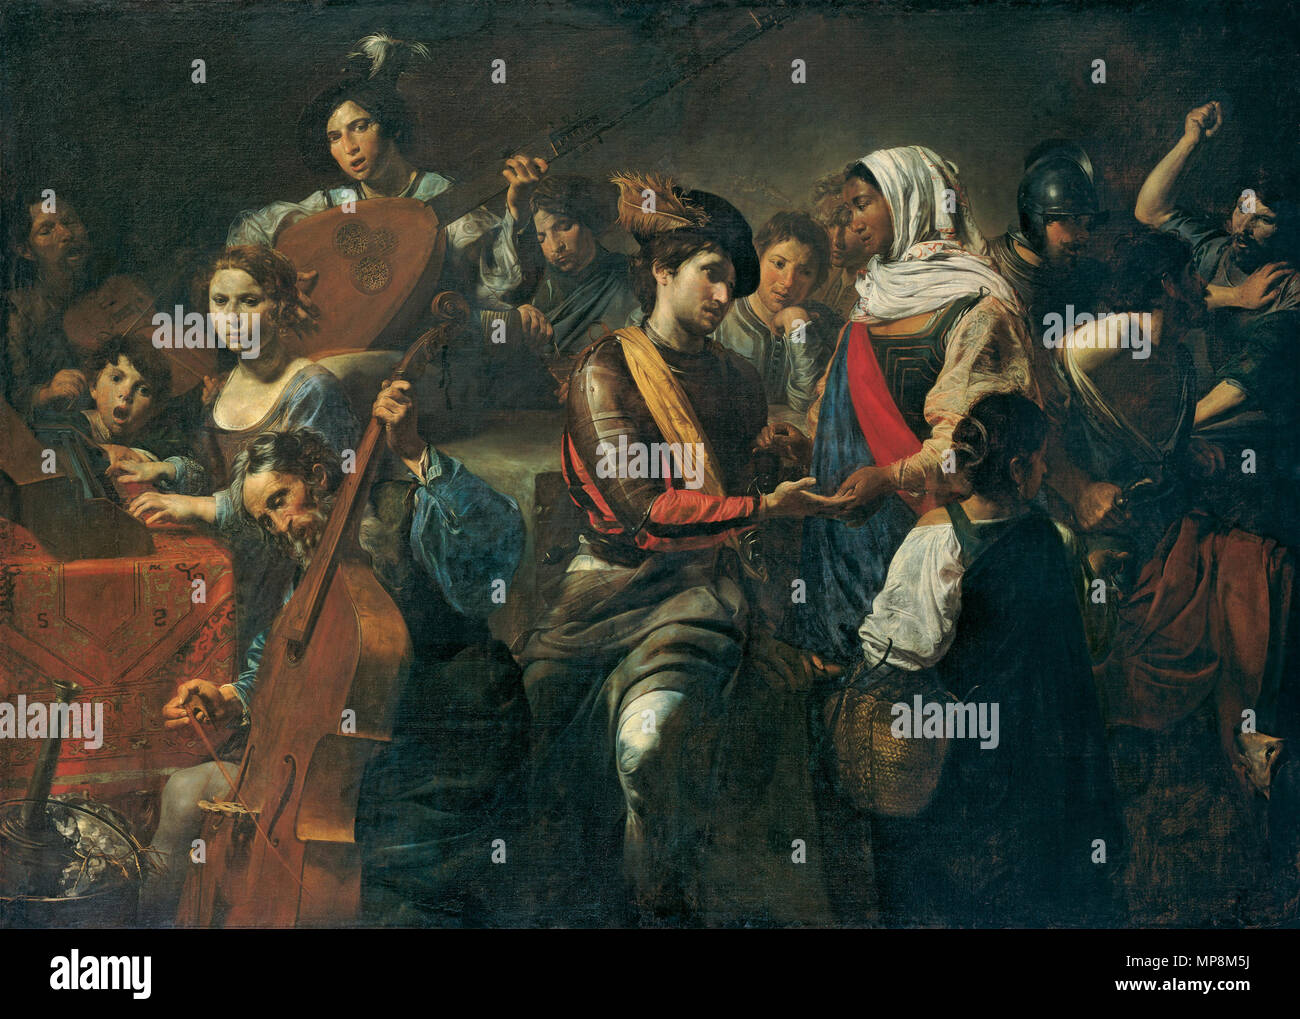 """01    . English: Late work commissioned by a Sicilian aristocrat living in Madrid, Fabrizio Valguarnera, when on a visit to Rome in 1631: a """"picture of people featuring a gypsy, with soldiers and other women playing instruments"""". Strong contrasts of light and shade, known as chiaroscuro, are modelled on Michelangelo Merisi, known as Caravaggio (1571–1610). As in this painting, Valentin's work is based on the secular scenes of Caravaggio's early period, but he combined them with the dark, highly contrasting colors of the master's late style . 1631. Valentin de Boulogne 1218 VALENTIN DE BOULOGNE - Stock Image"""